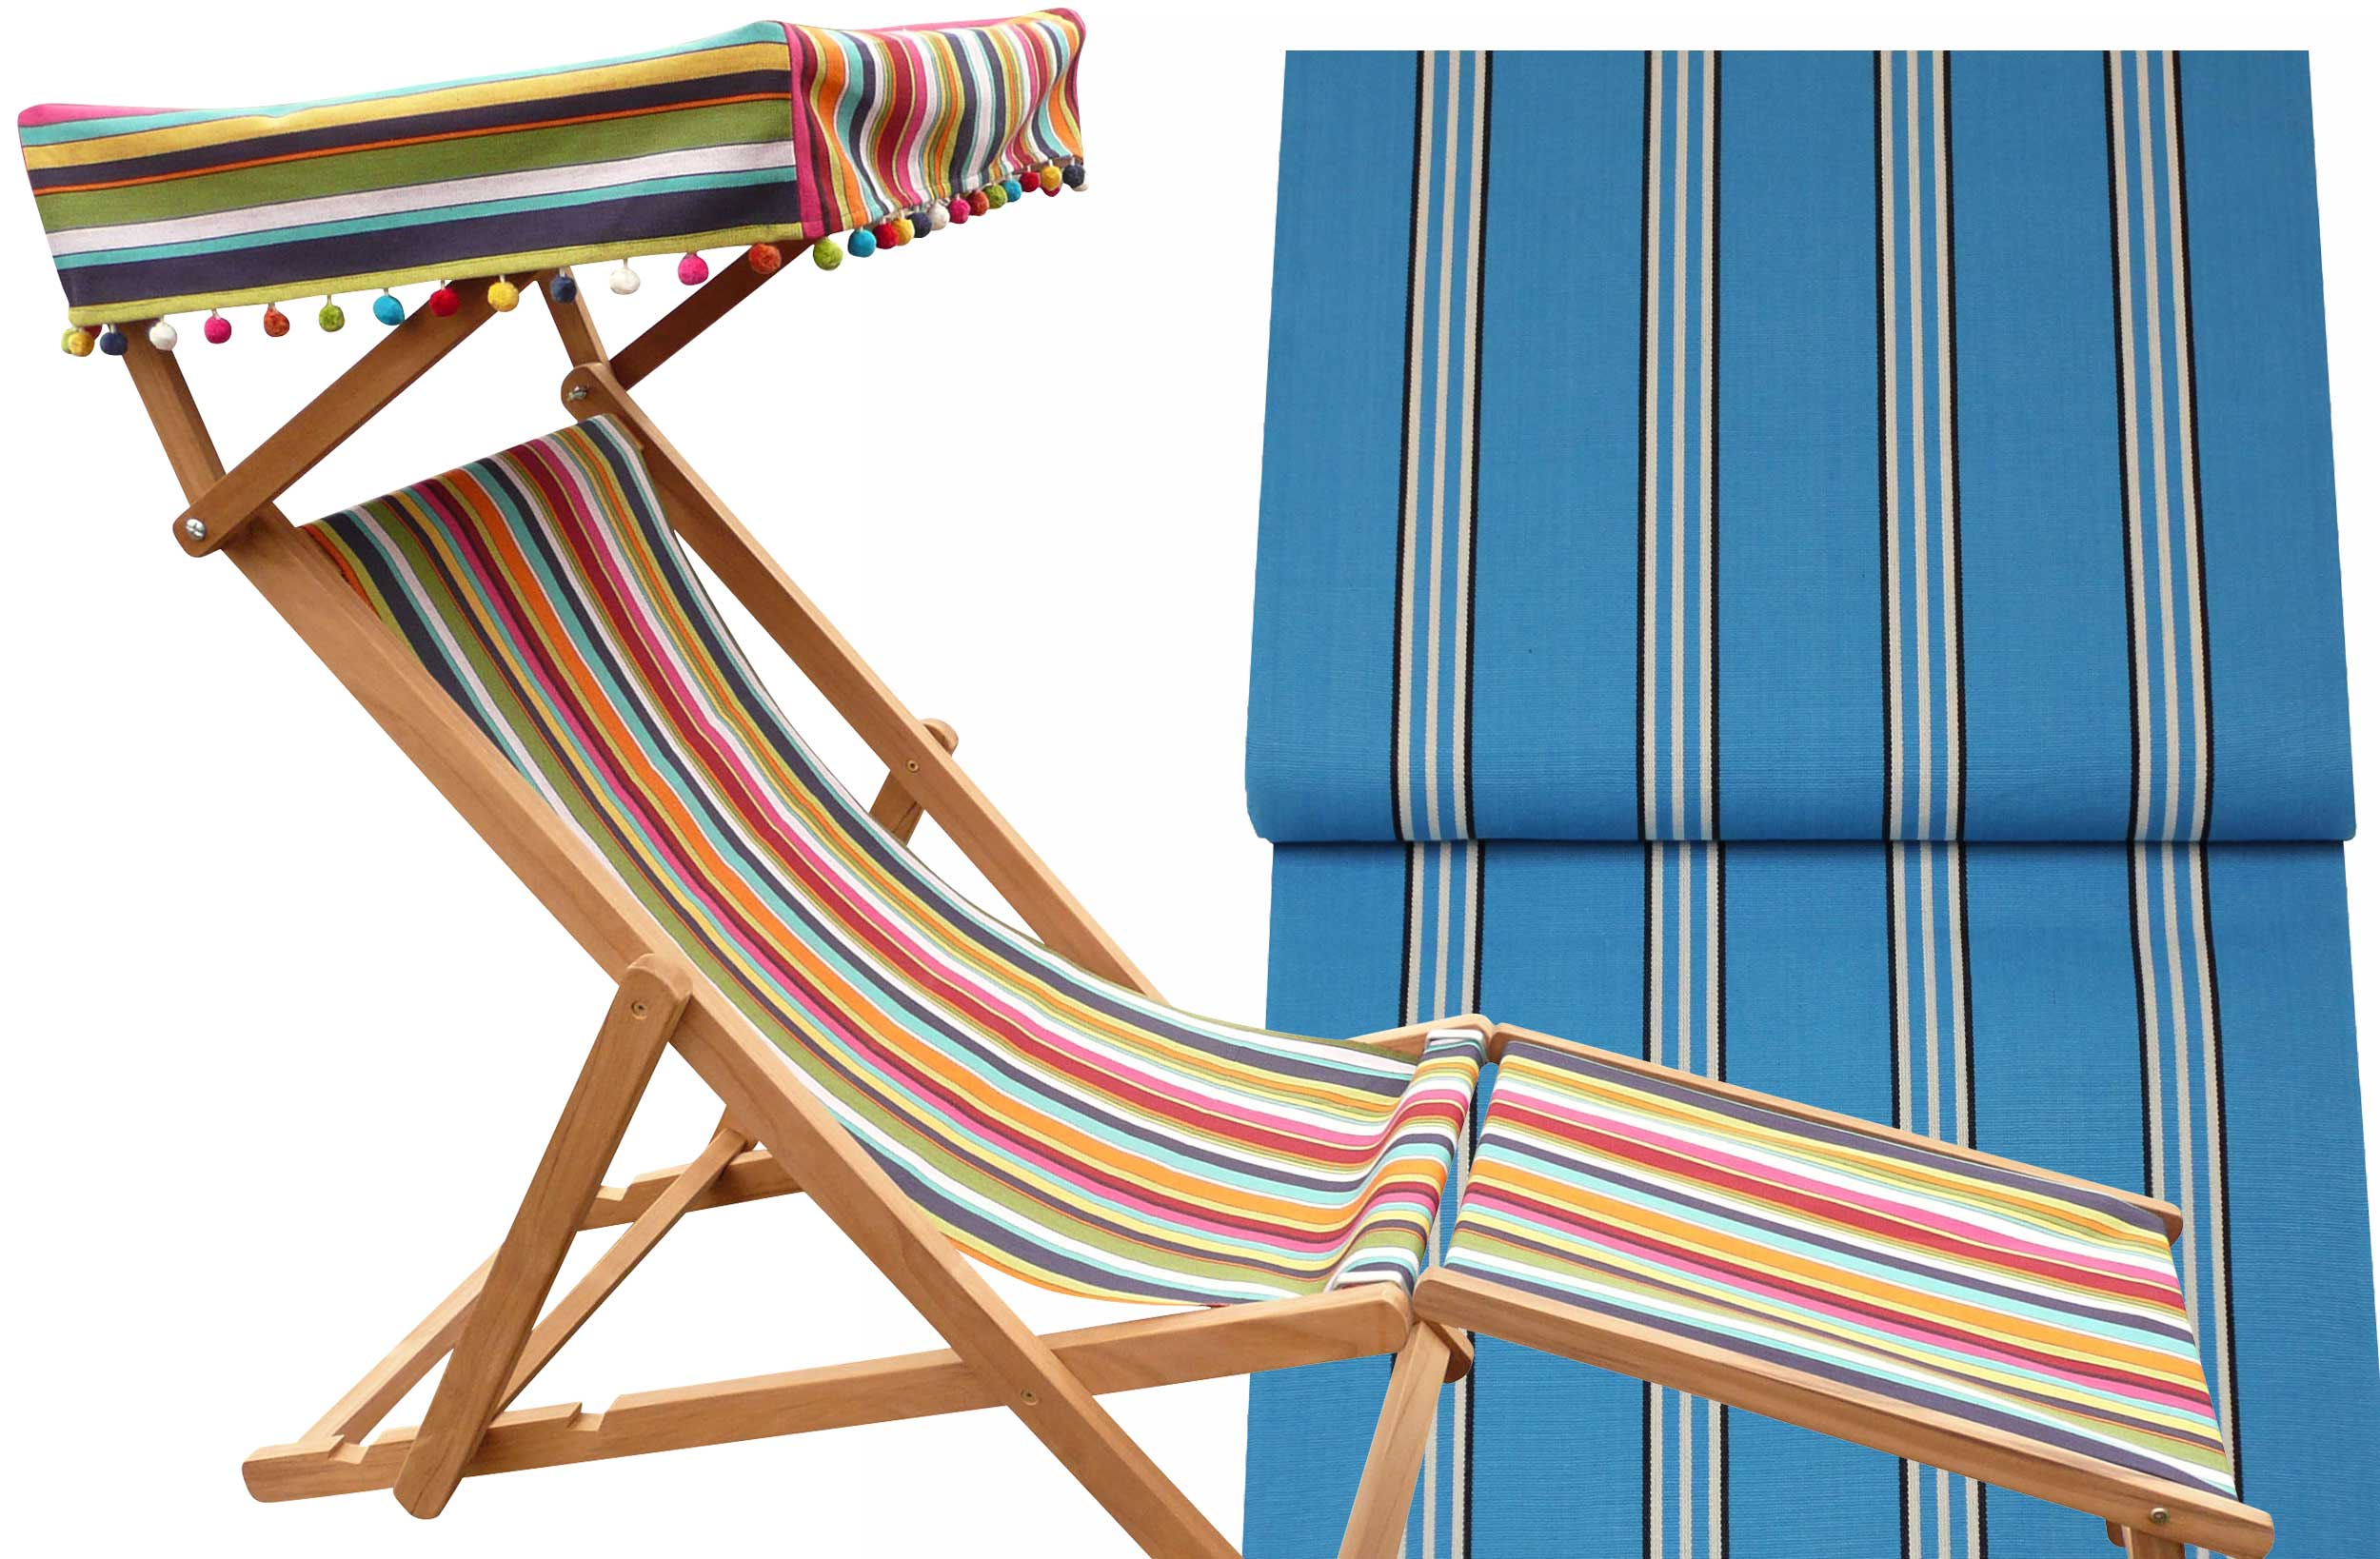 Edwardian Deckchairs with Canopy and Footstool turquoise, white, black